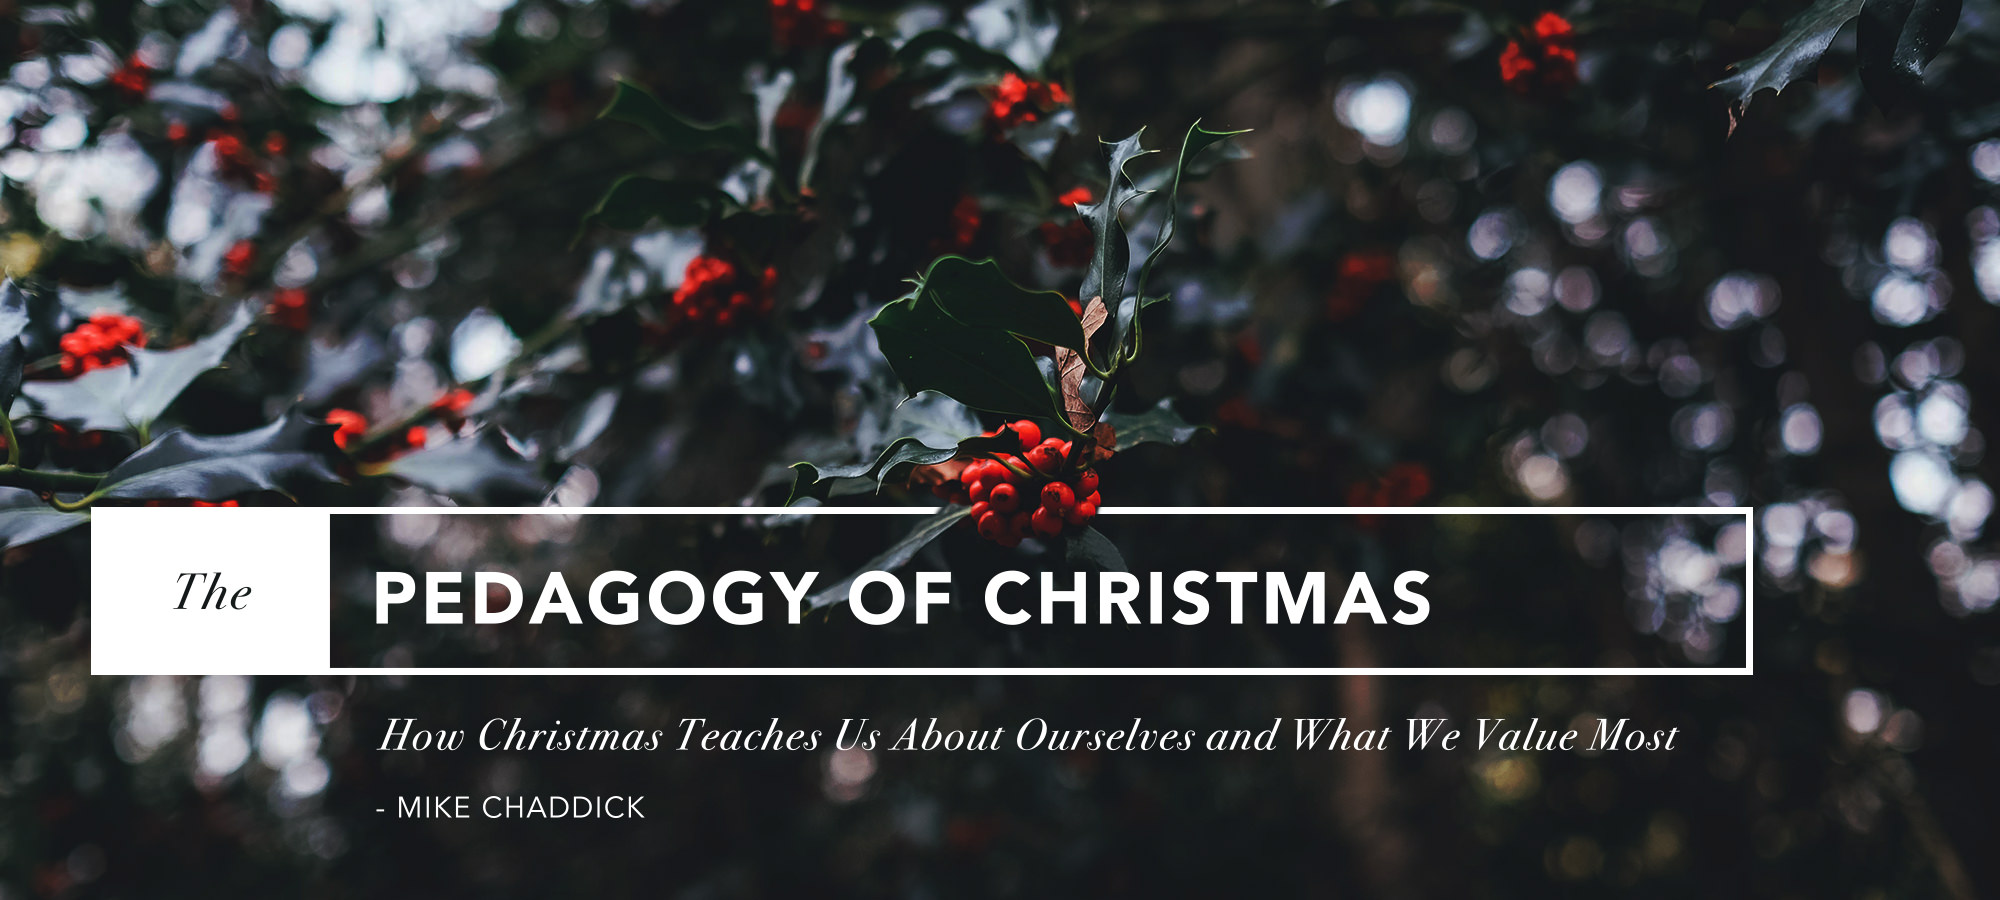 The Pedagogy of Christmas: How Christmas Teaches Us About Ourselves, and What We Value Most